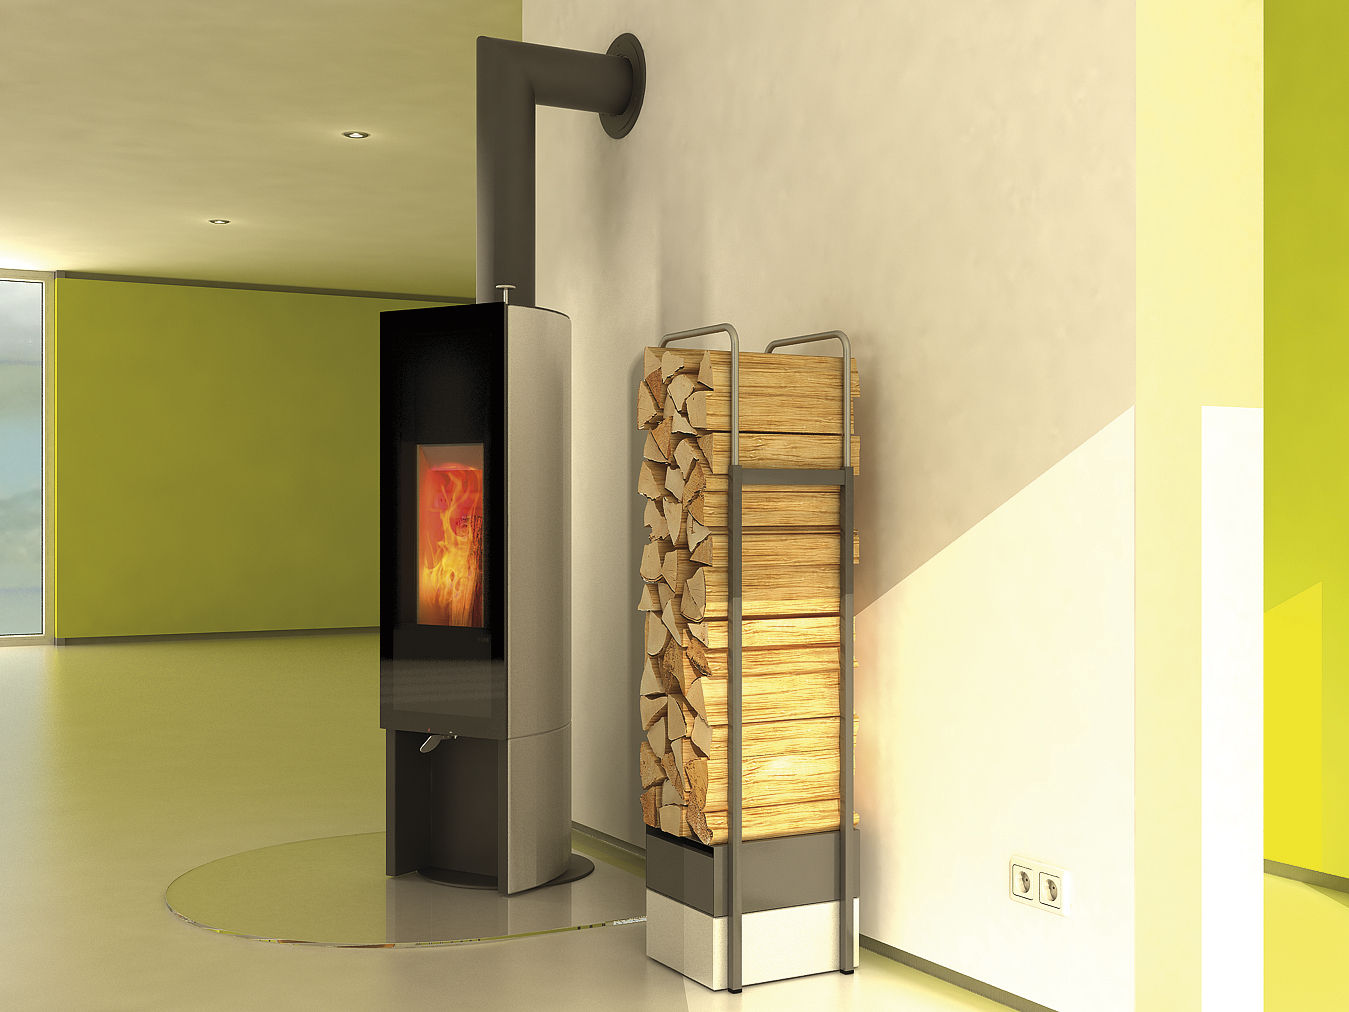 Wood Heating Stove Contemporary Central Stone T One Swing By Gaan Gabriela Vetsch André Riemens Tonwerk Lausen Ag